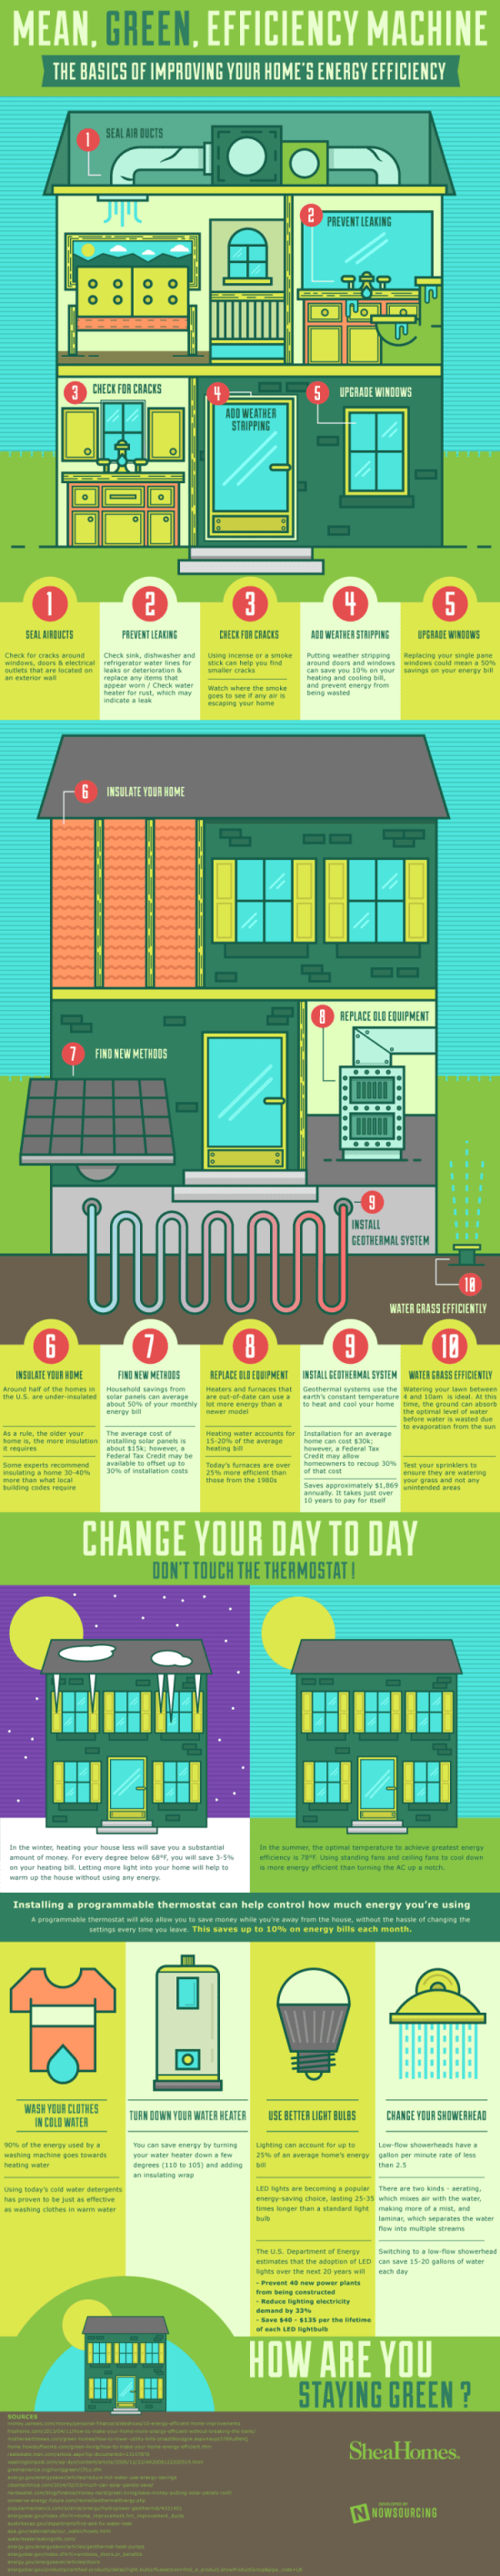 Improving-Home-Energy-Efficiency-Infographic